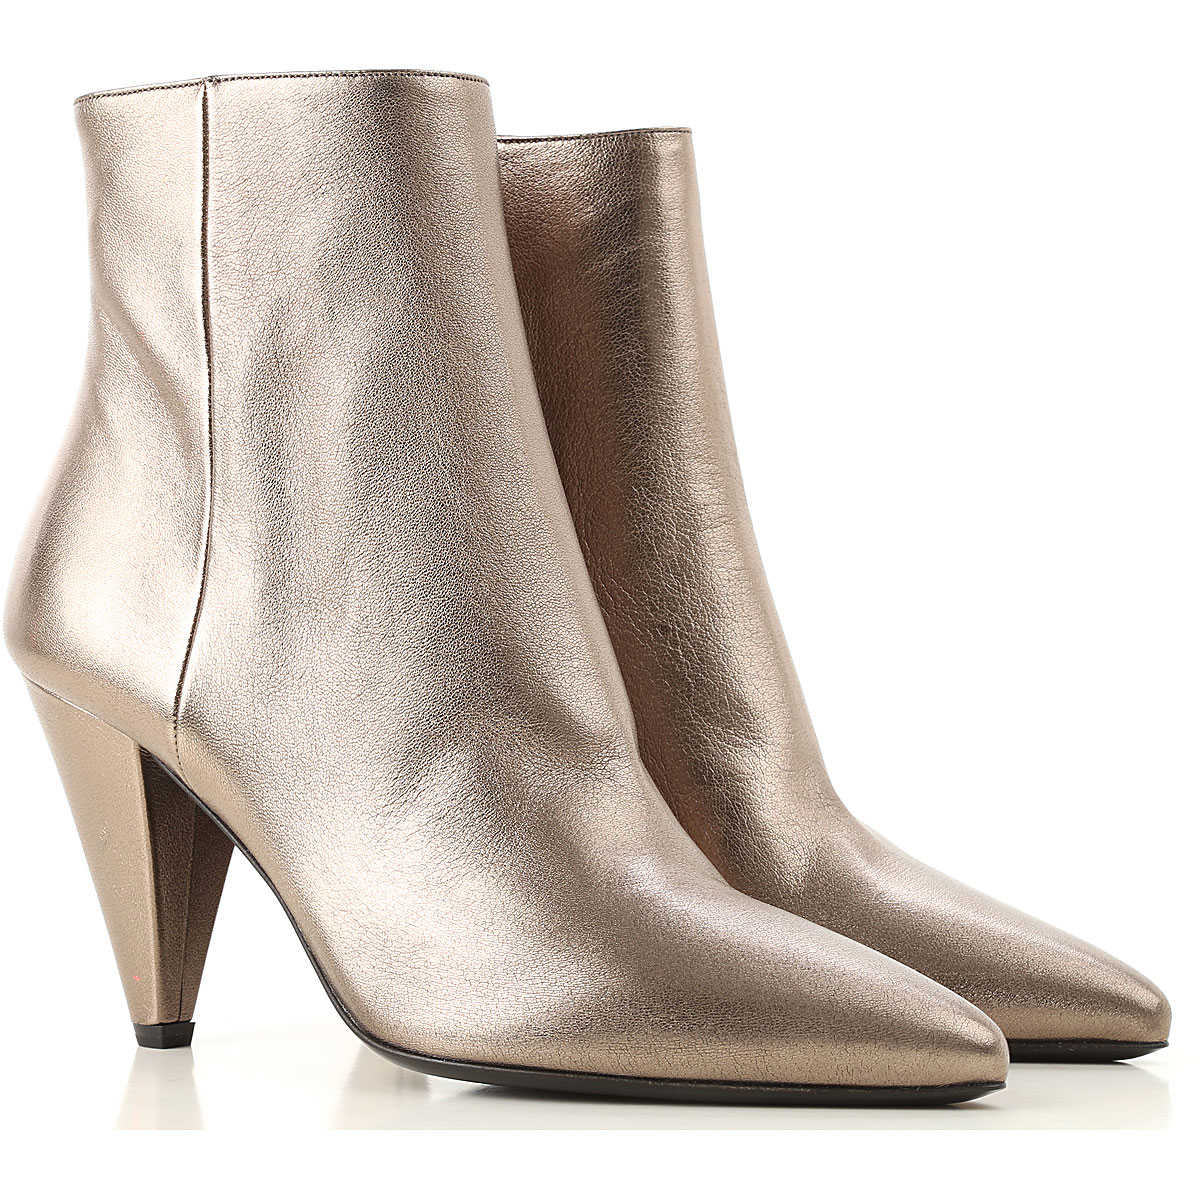 Prada Boots for Women